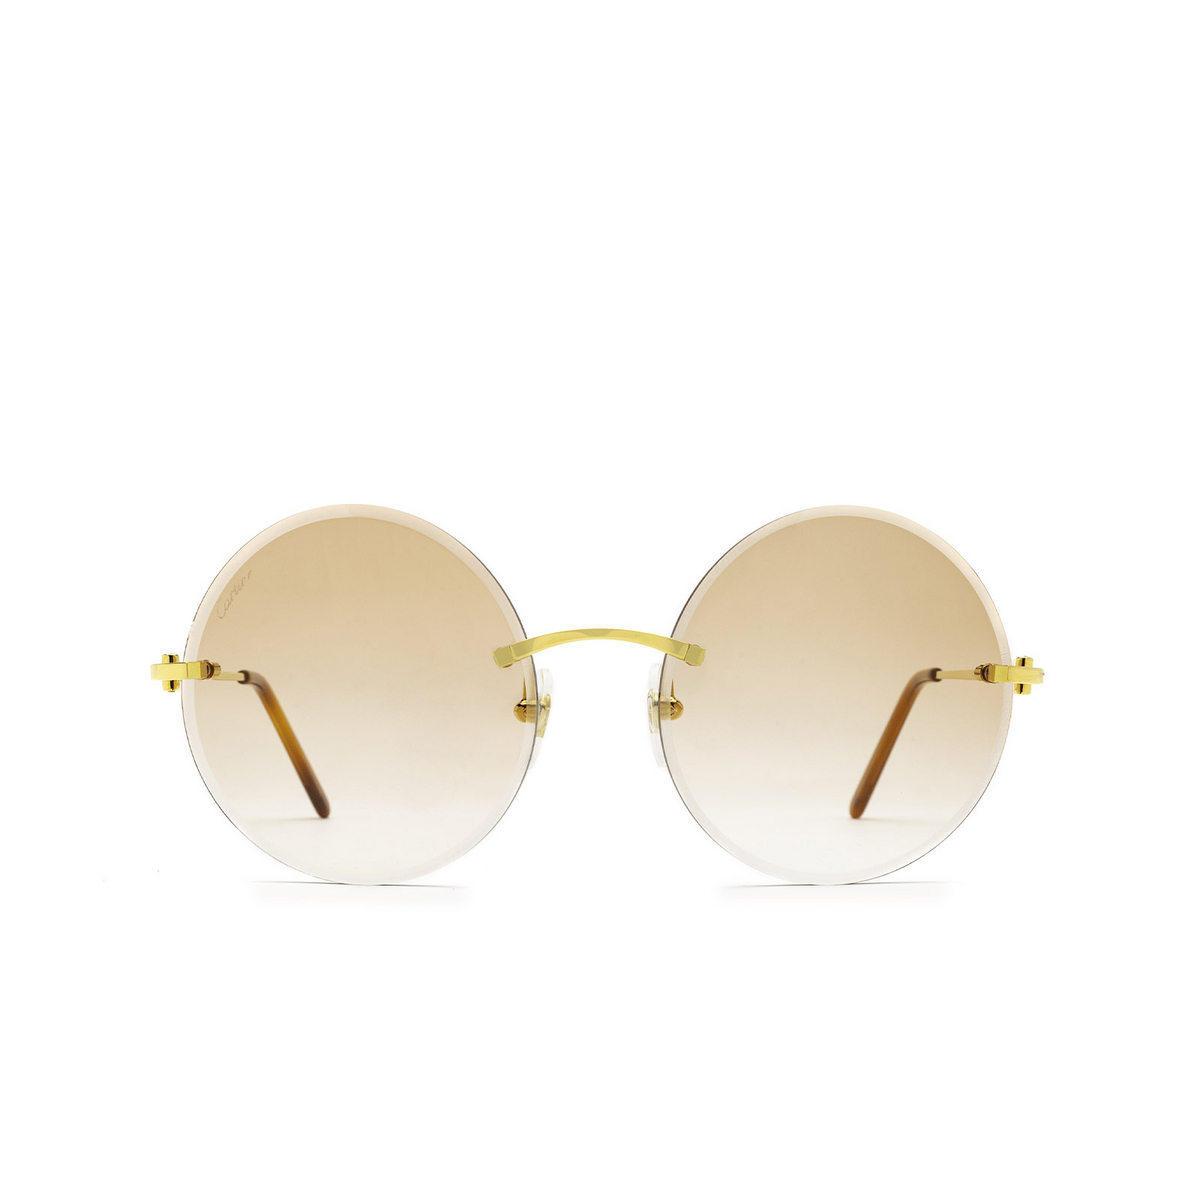 Cartier® Round Sunglasses: CT0002RS color Gold 001 - front view.